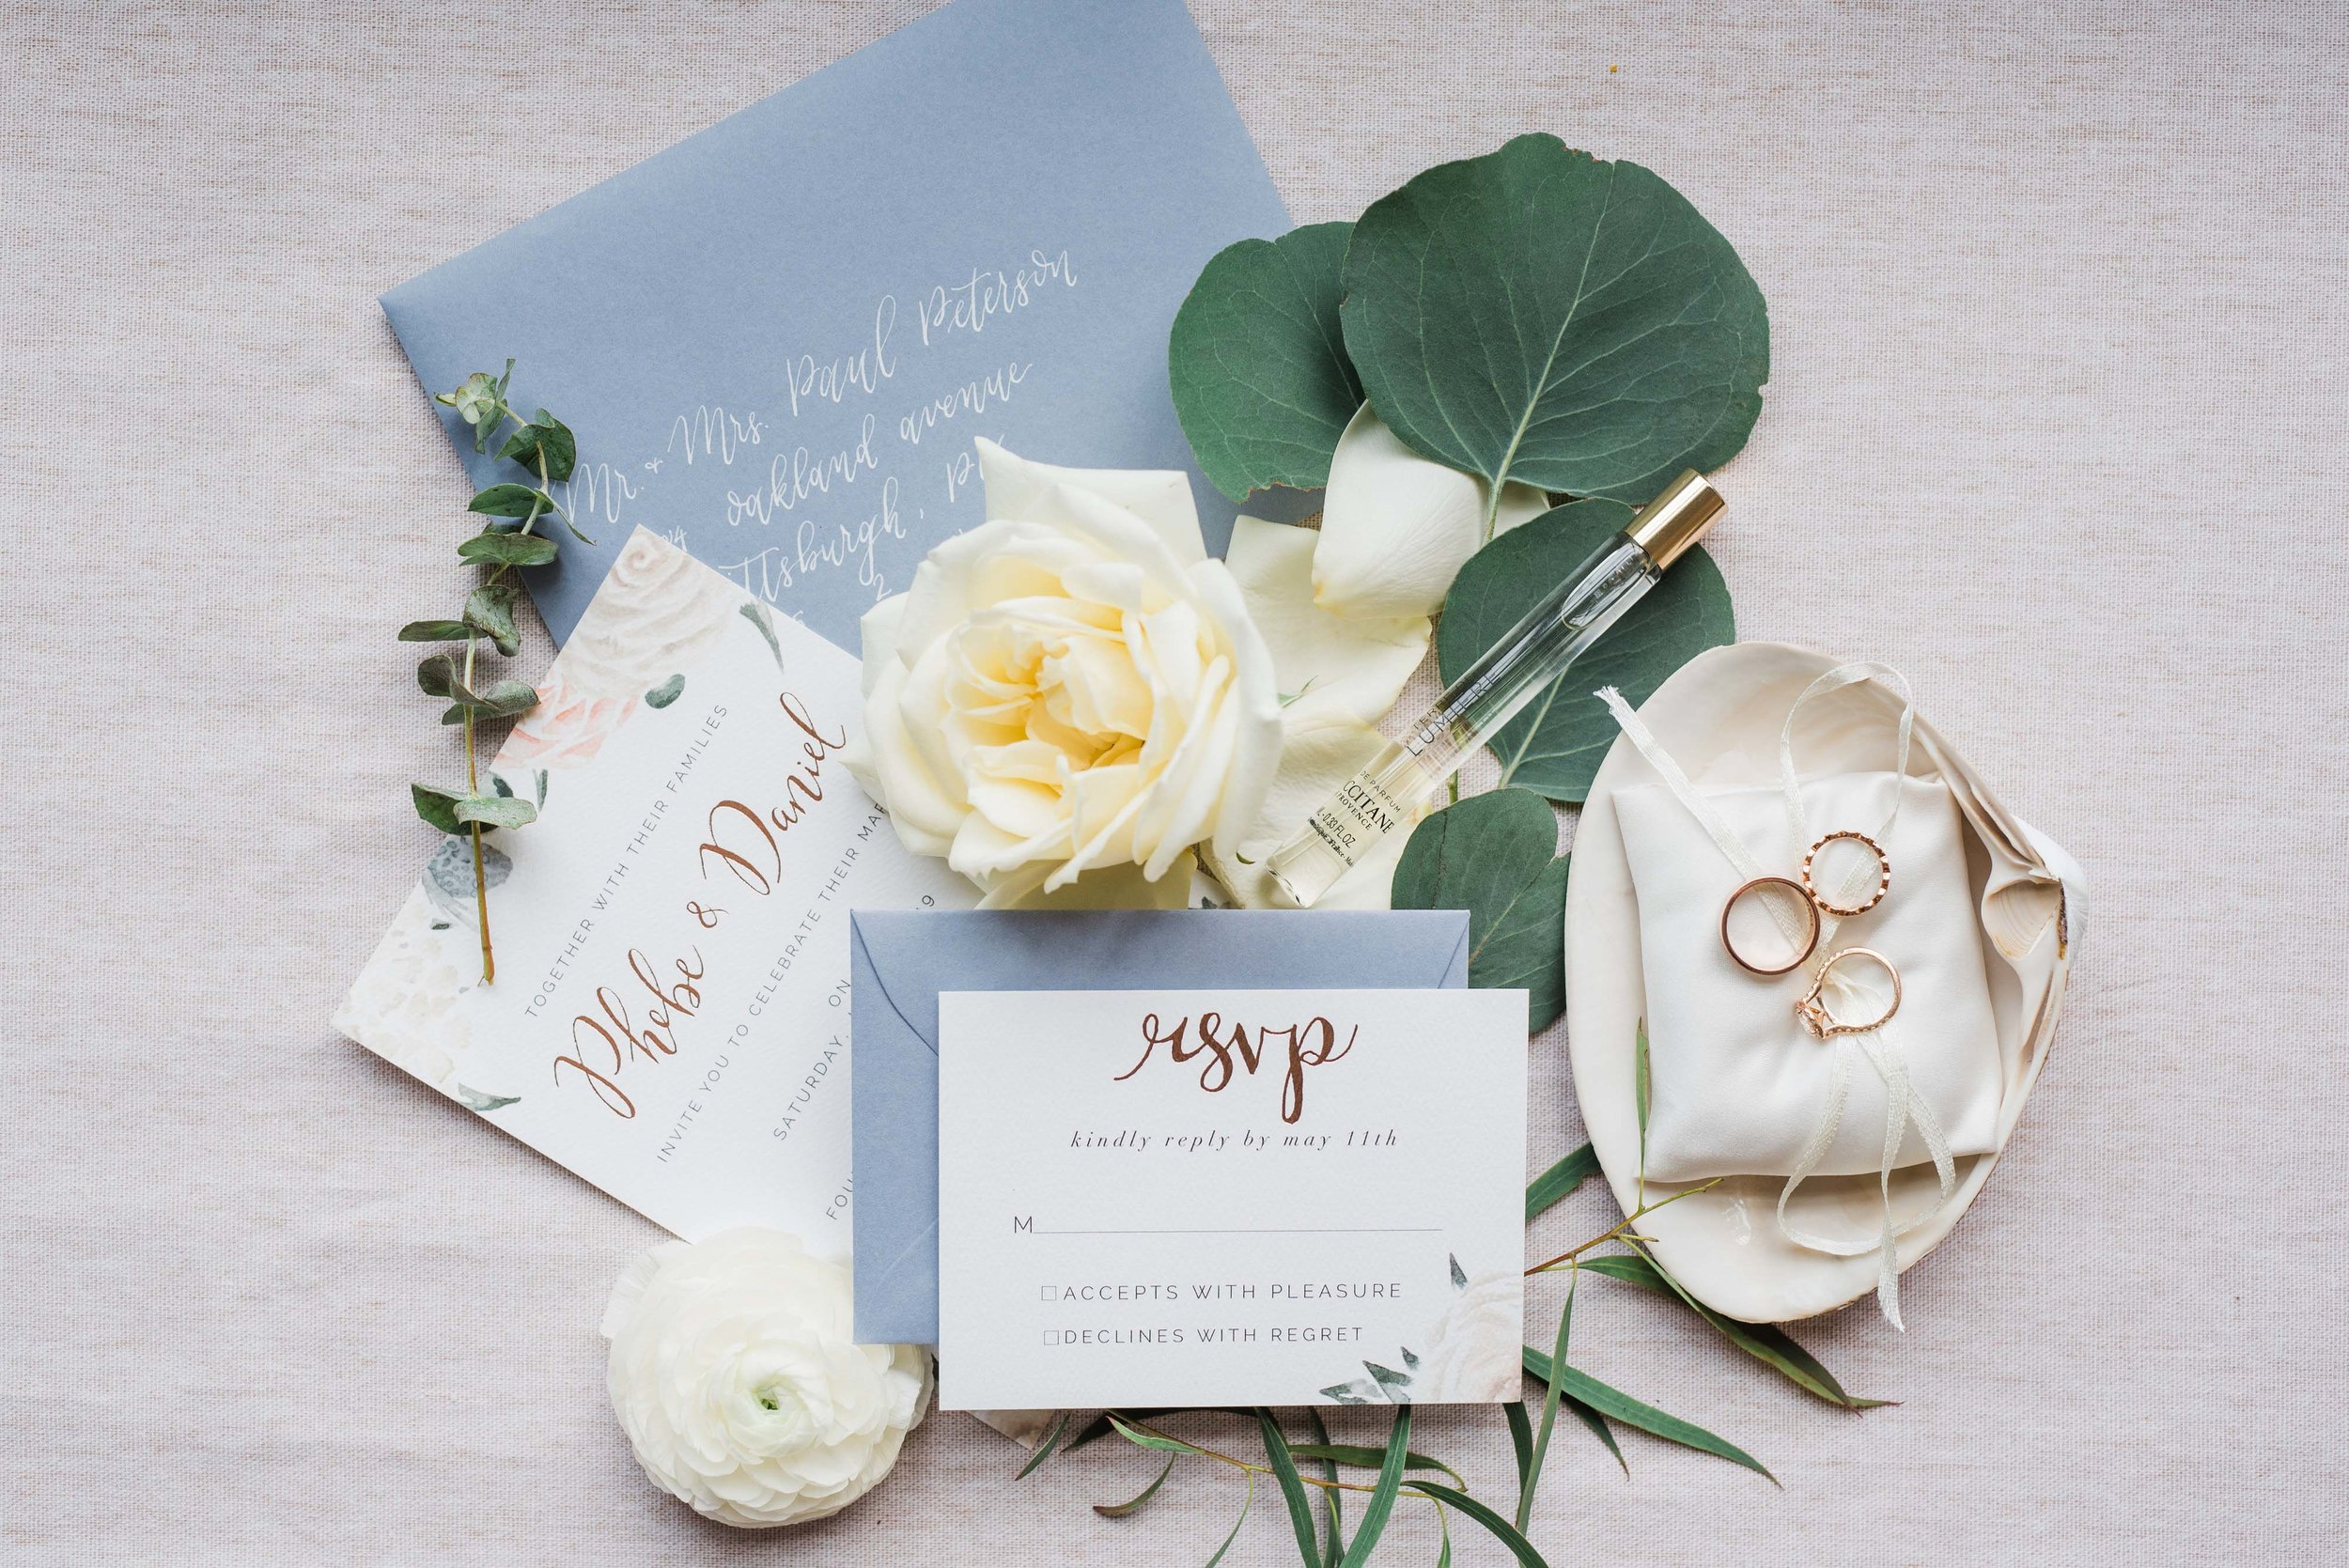 blue invitation suite wedding ace hotel pittsburgh